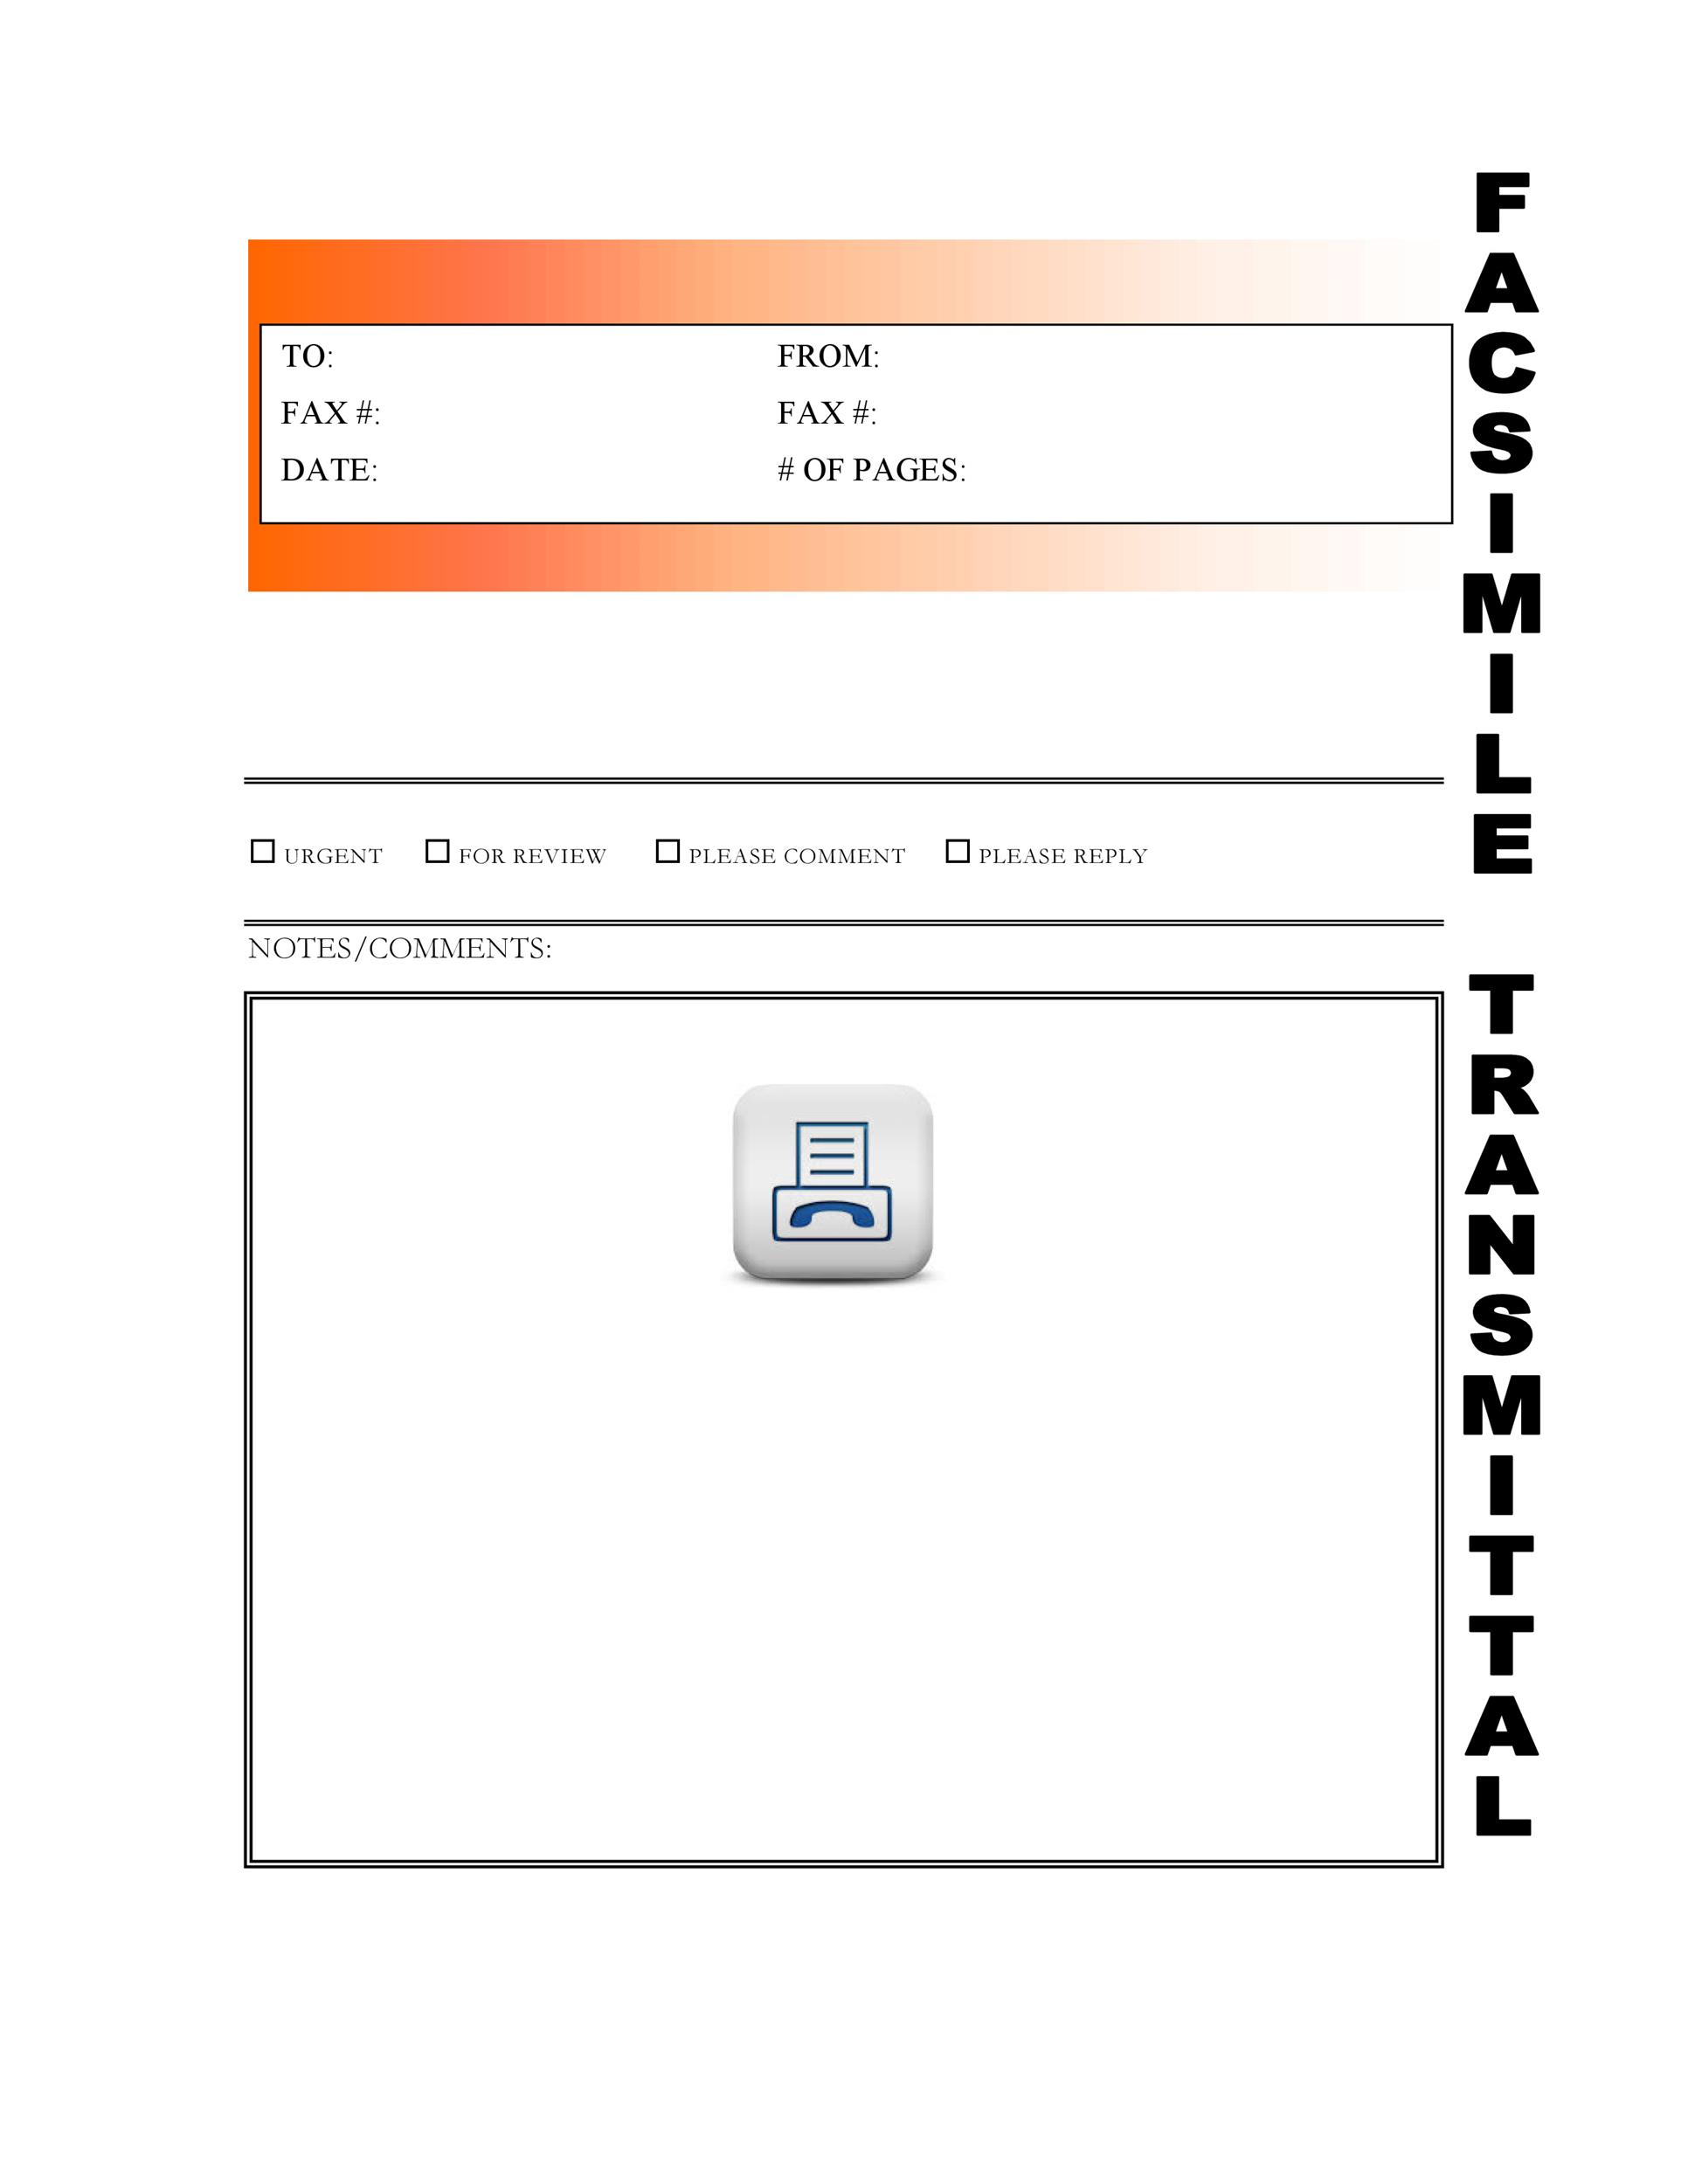 40 Printable Fax Cover Sheet Templates ᐅ Template Lab